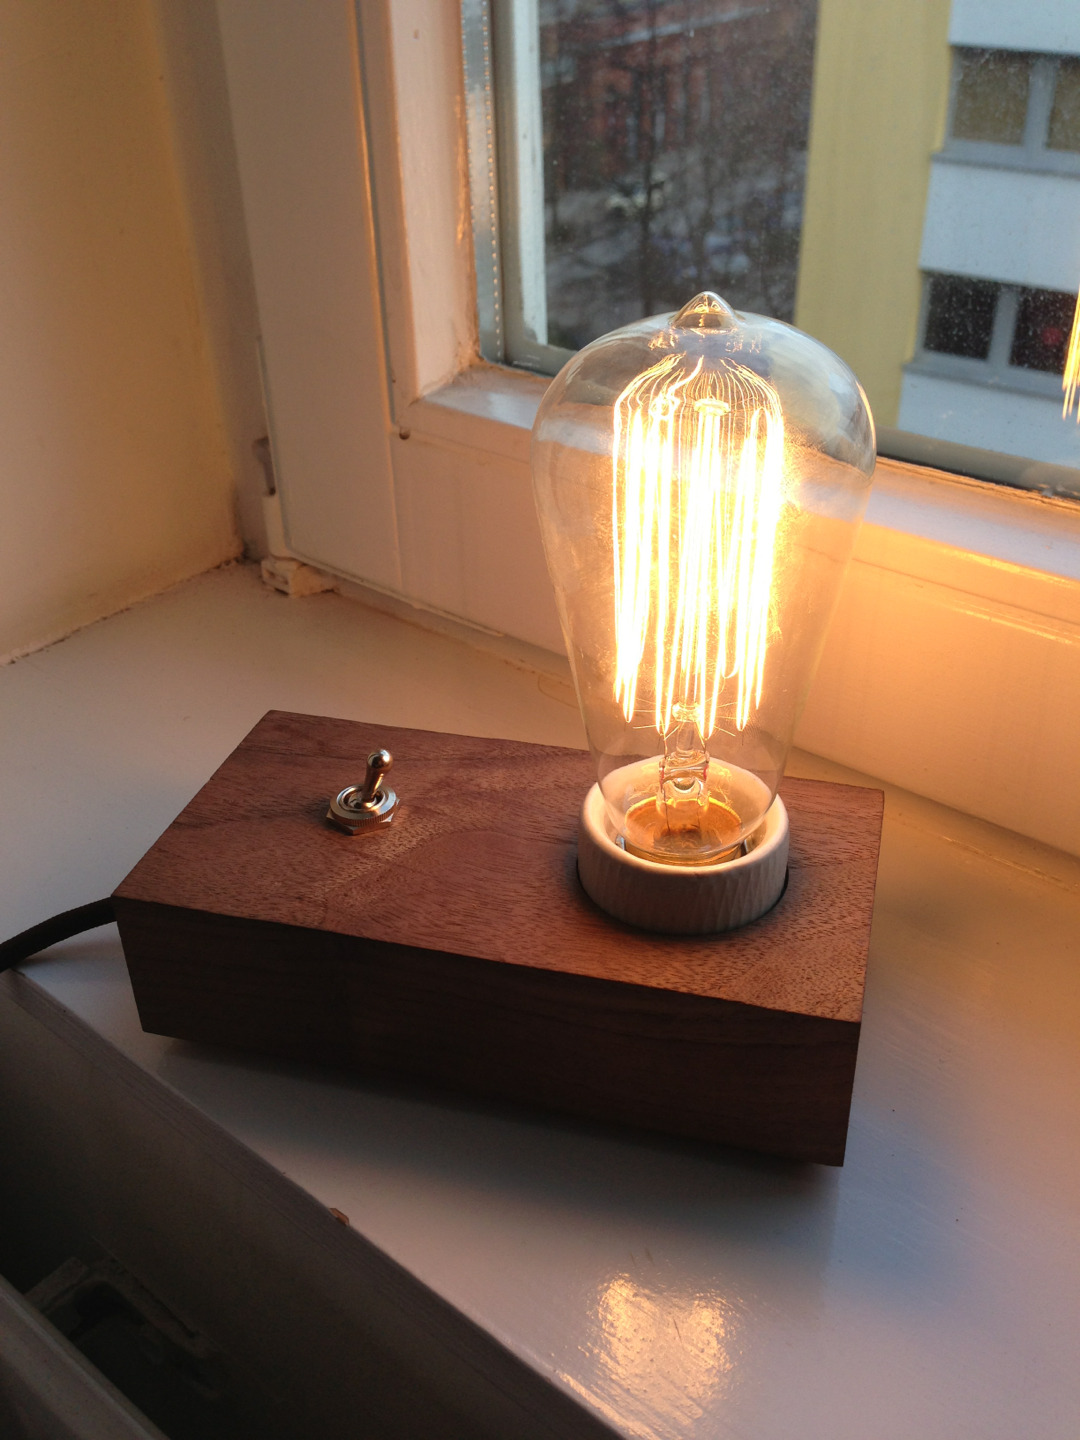 I built a lamp from a block of nice wood.  Here's a video: http://vine.co/v/b1K1LqqBAYD